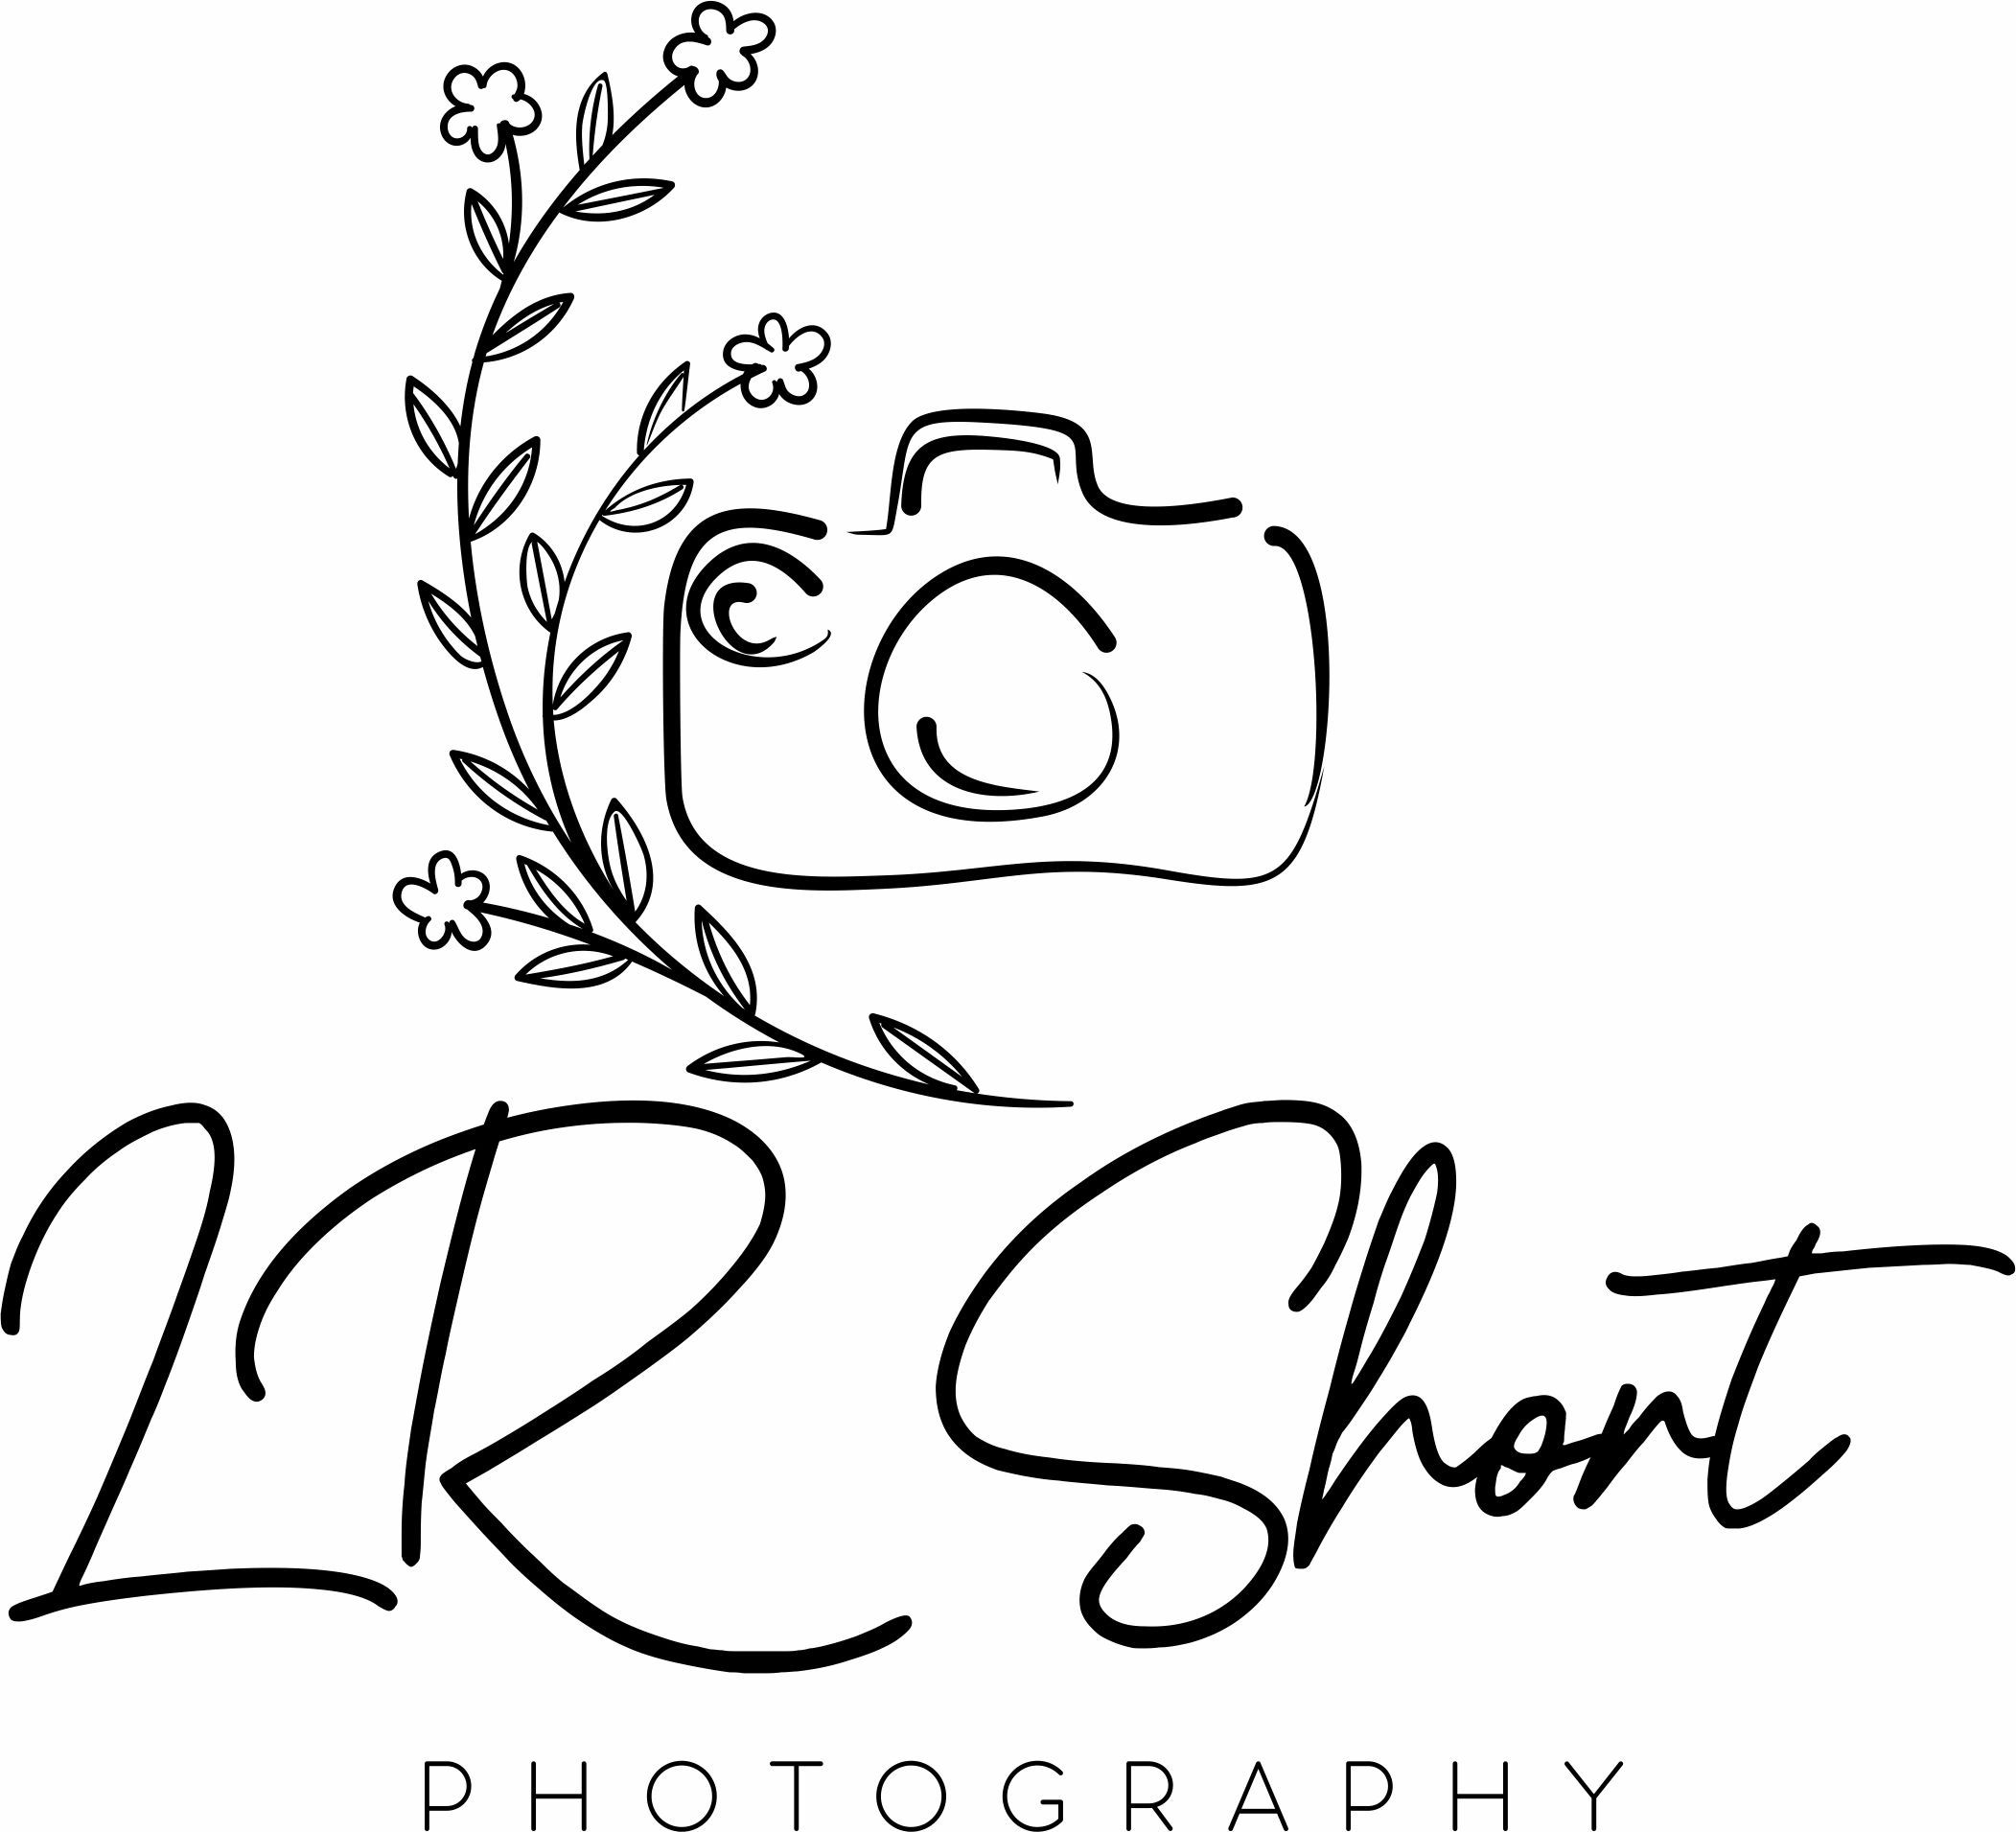 LR Short photography